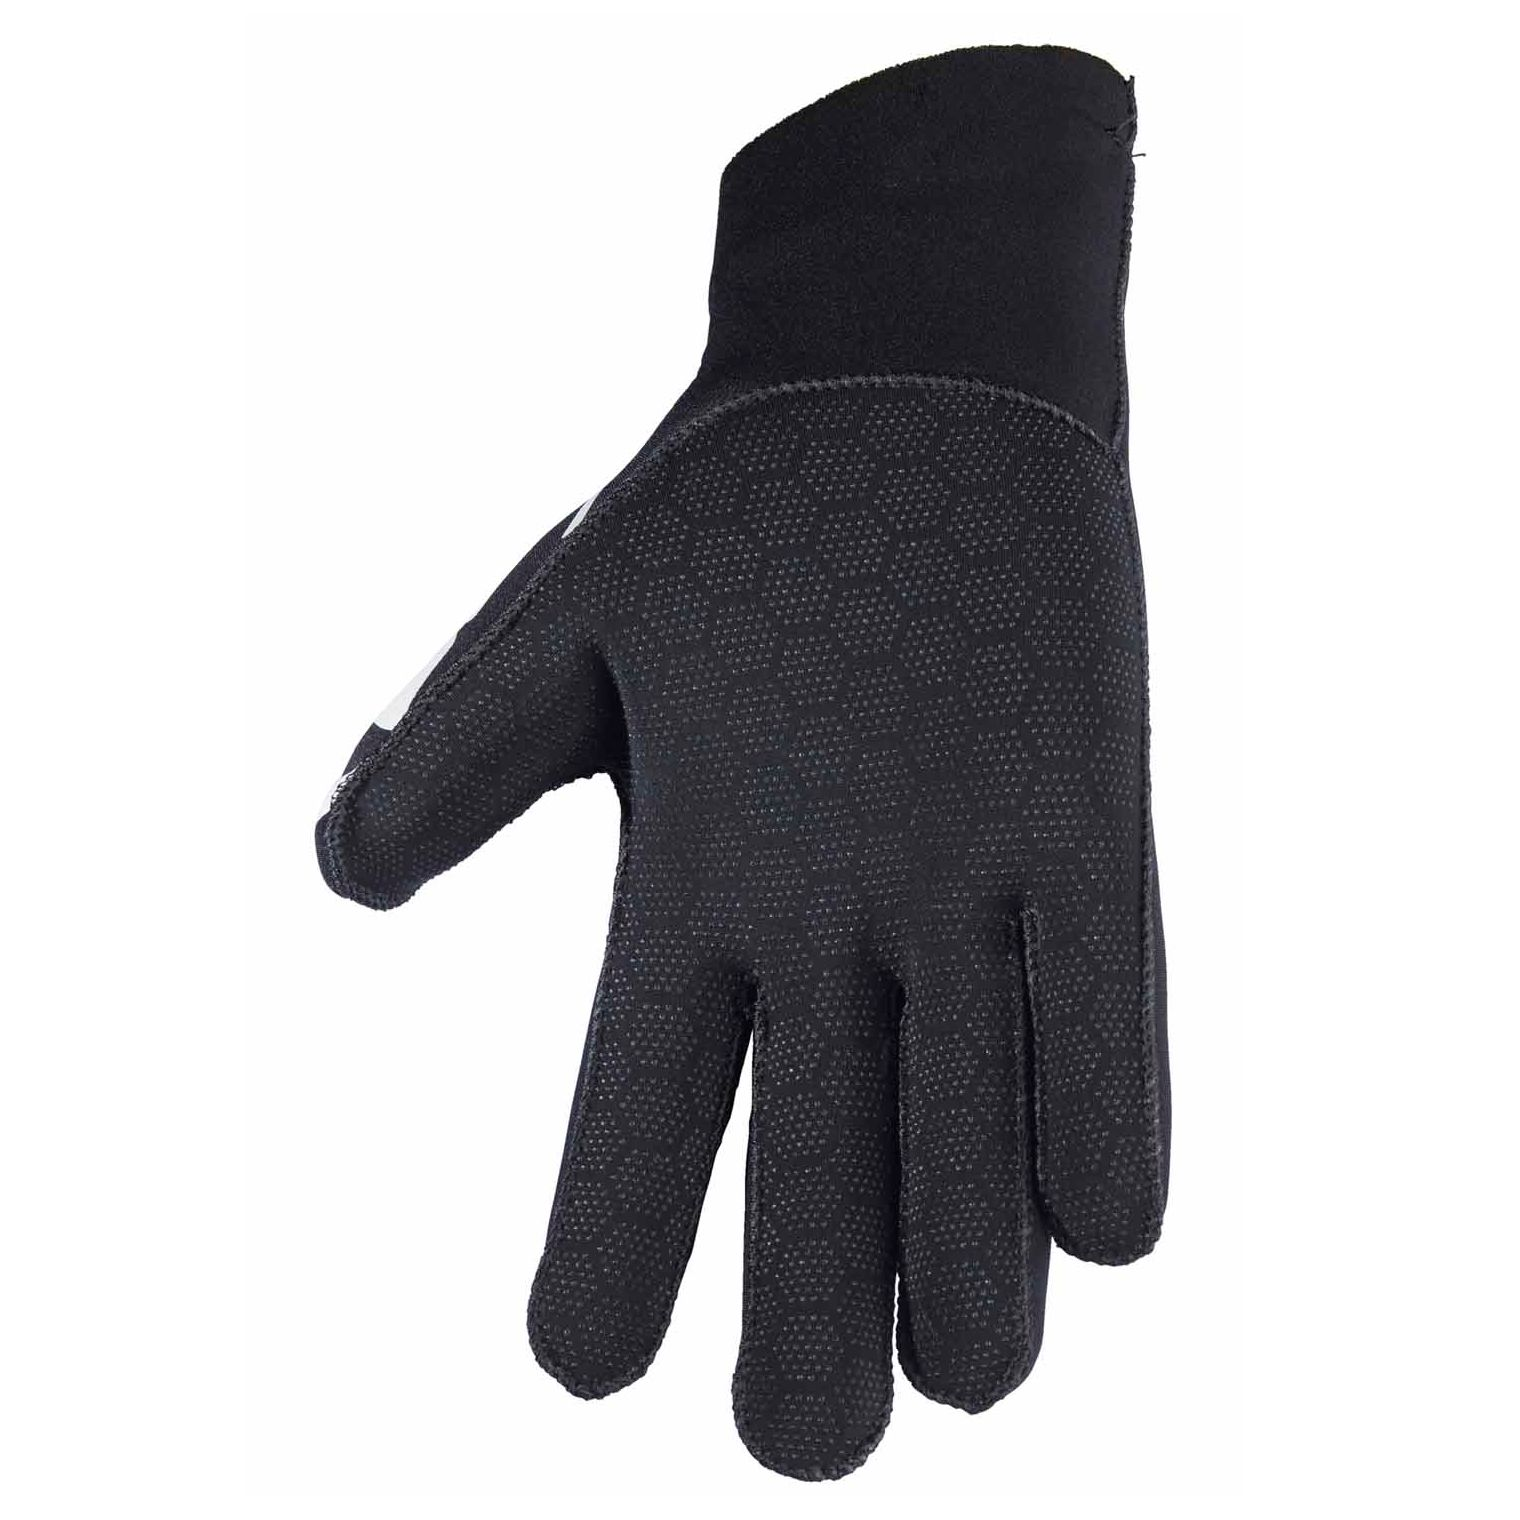 Gants cross Kenny destockage NEOPRENE -  2018